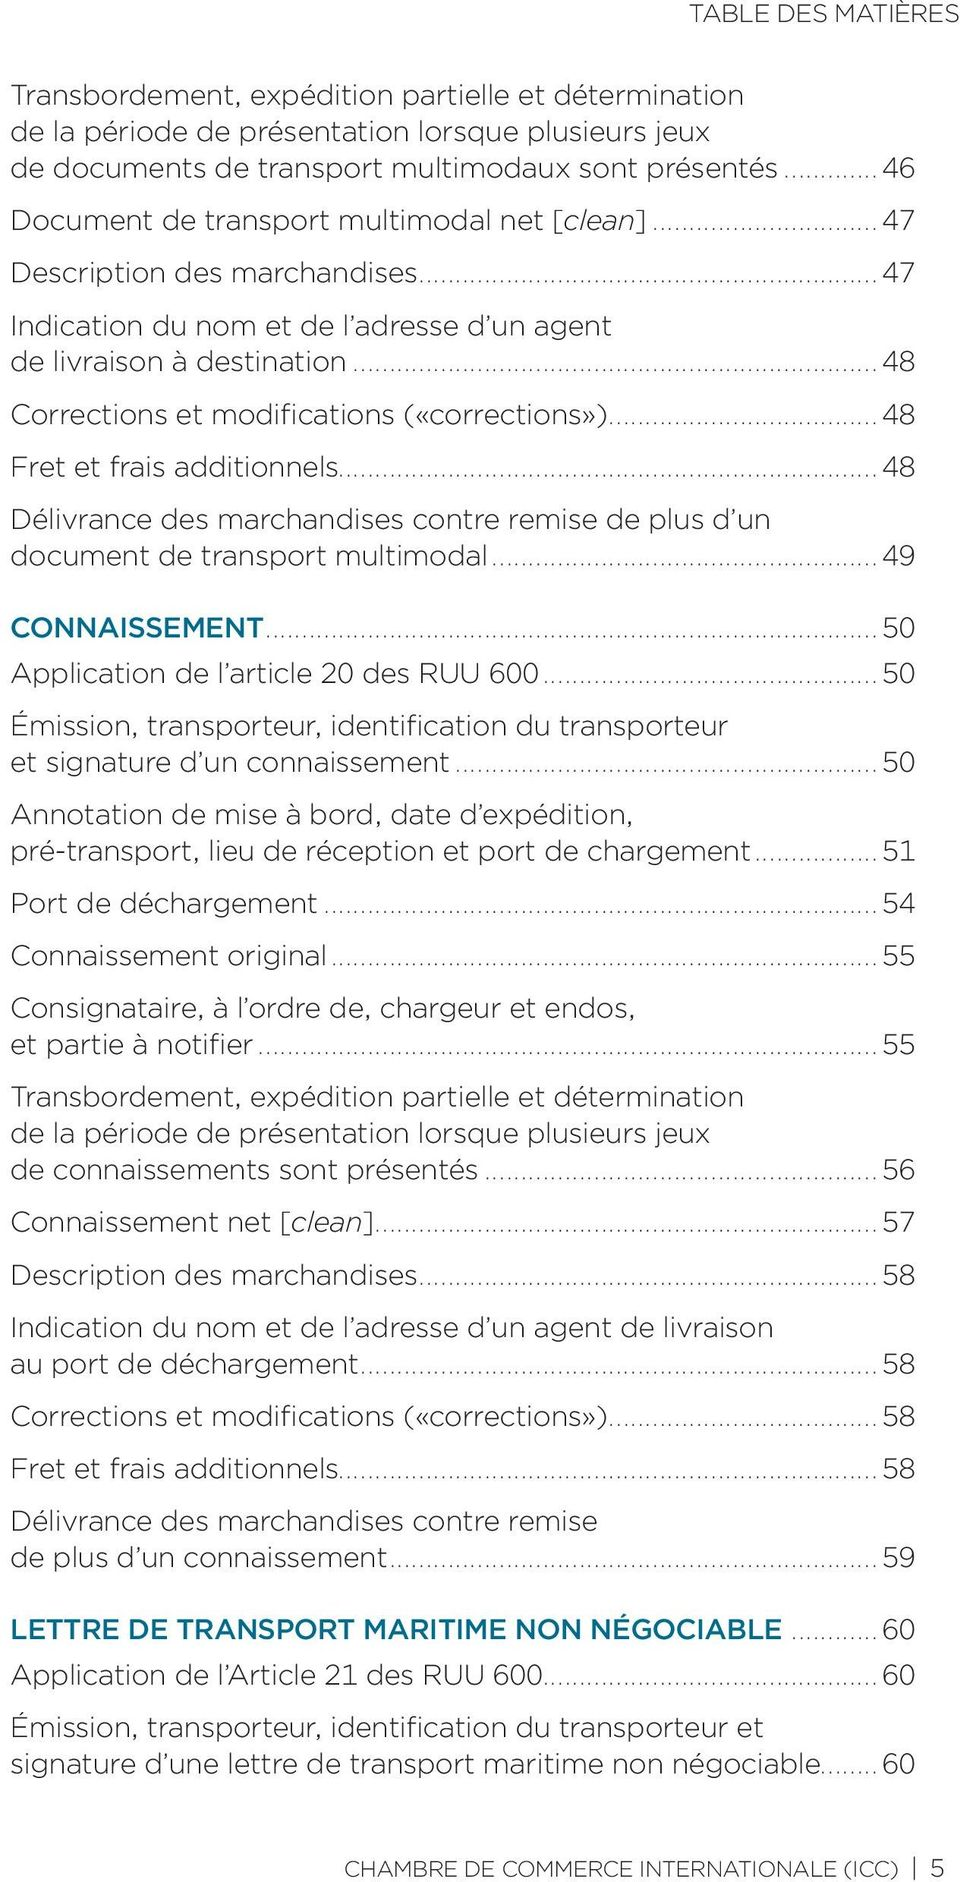 ..48 Corrections et modifications («corrections»)...48 Fret et frais additionnels...48 Délivrance des marchandises contre remise de plus d un document de transport multimodal...49 CONNAISSEMENT.